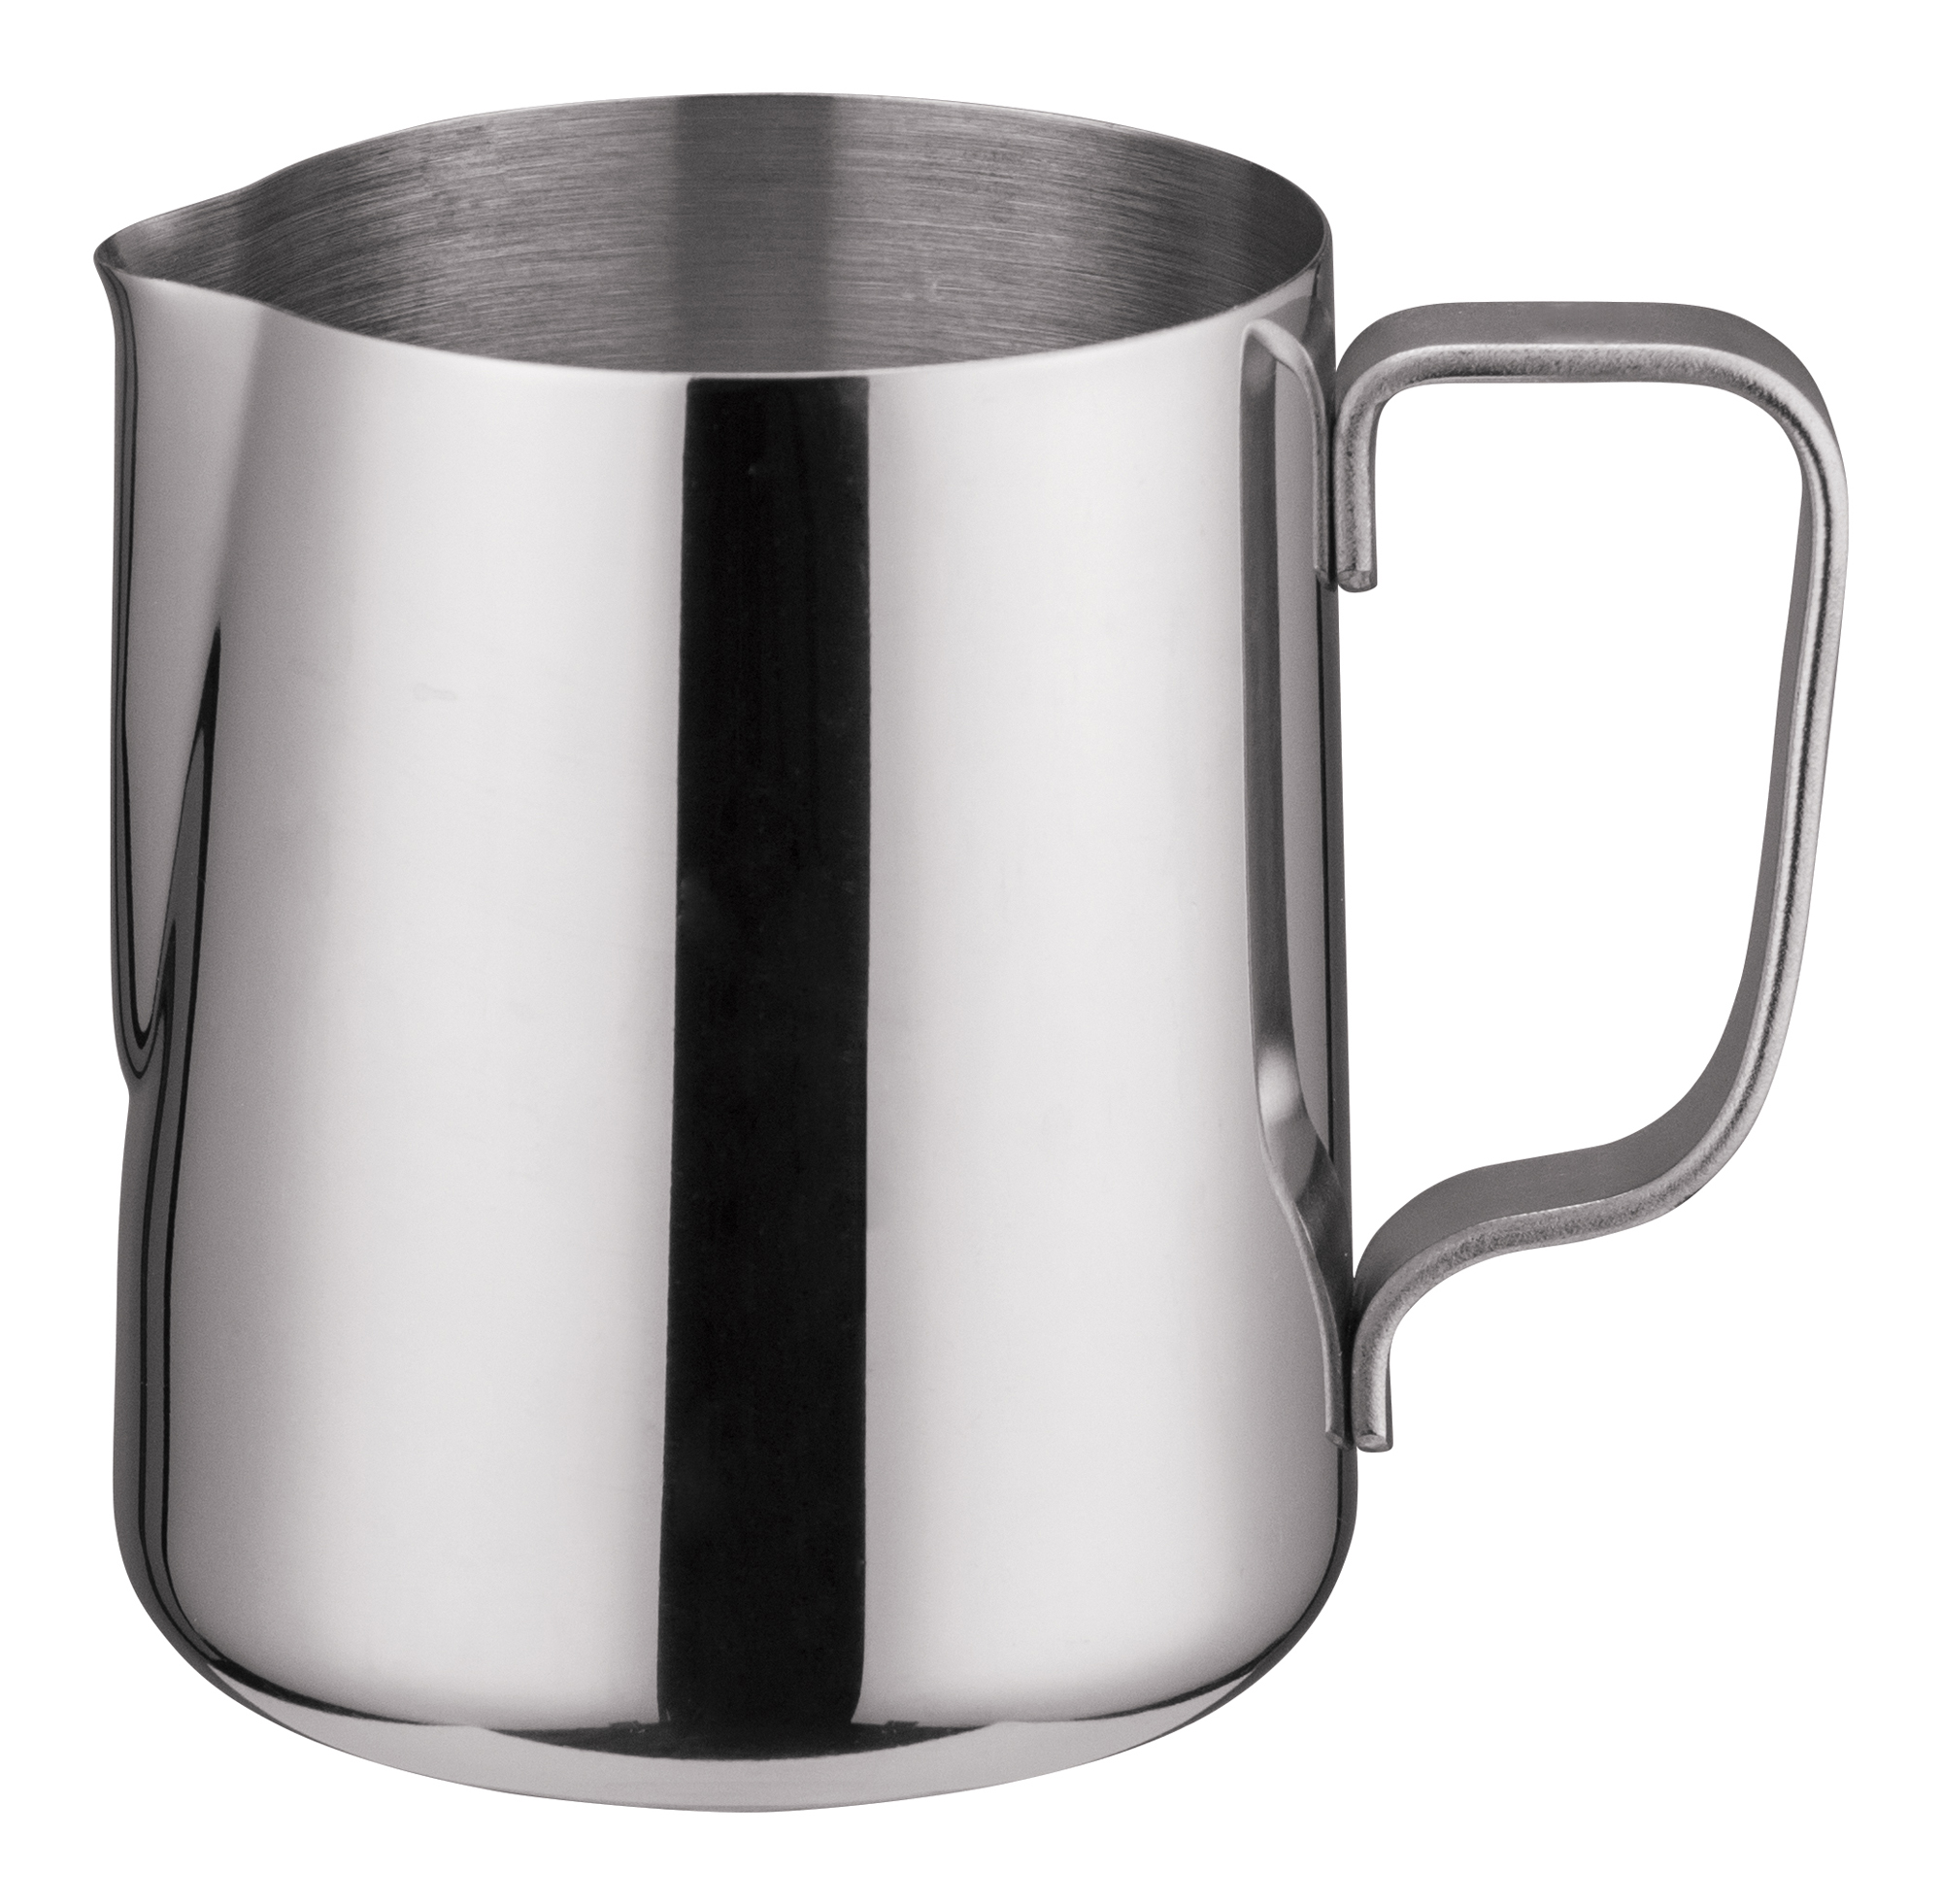 Winco WP-14 pitchers-stainless steel